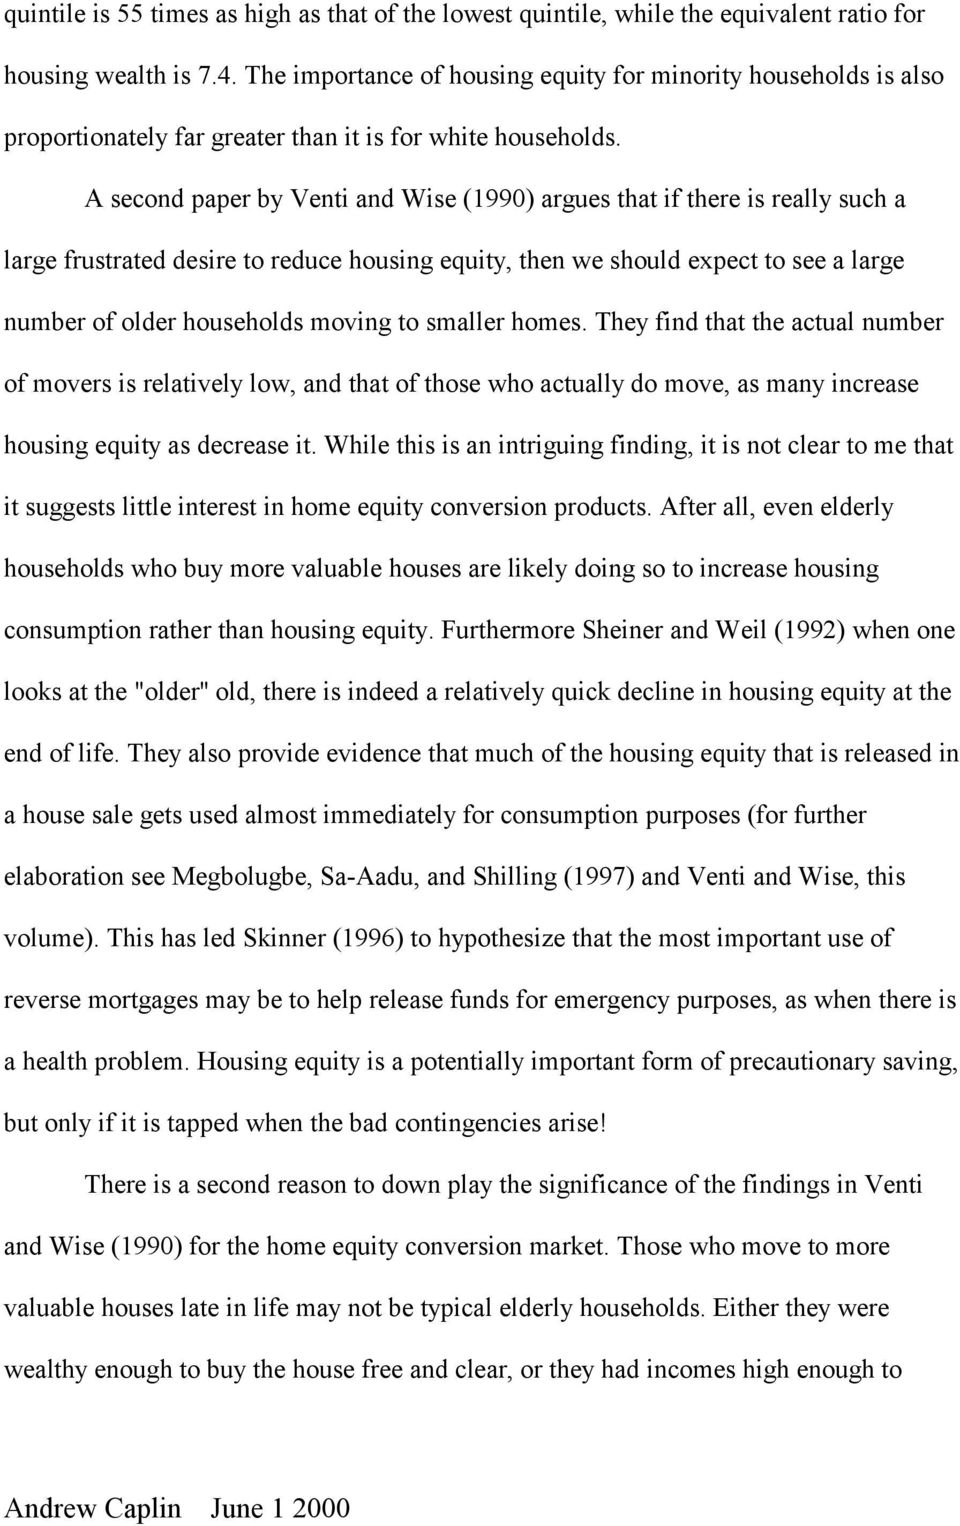 A second paper by Venti and Wise (1990) argues that if there is really such a large frustrated desire to reduce housing equity, then we should expect to see a large number of older households moving